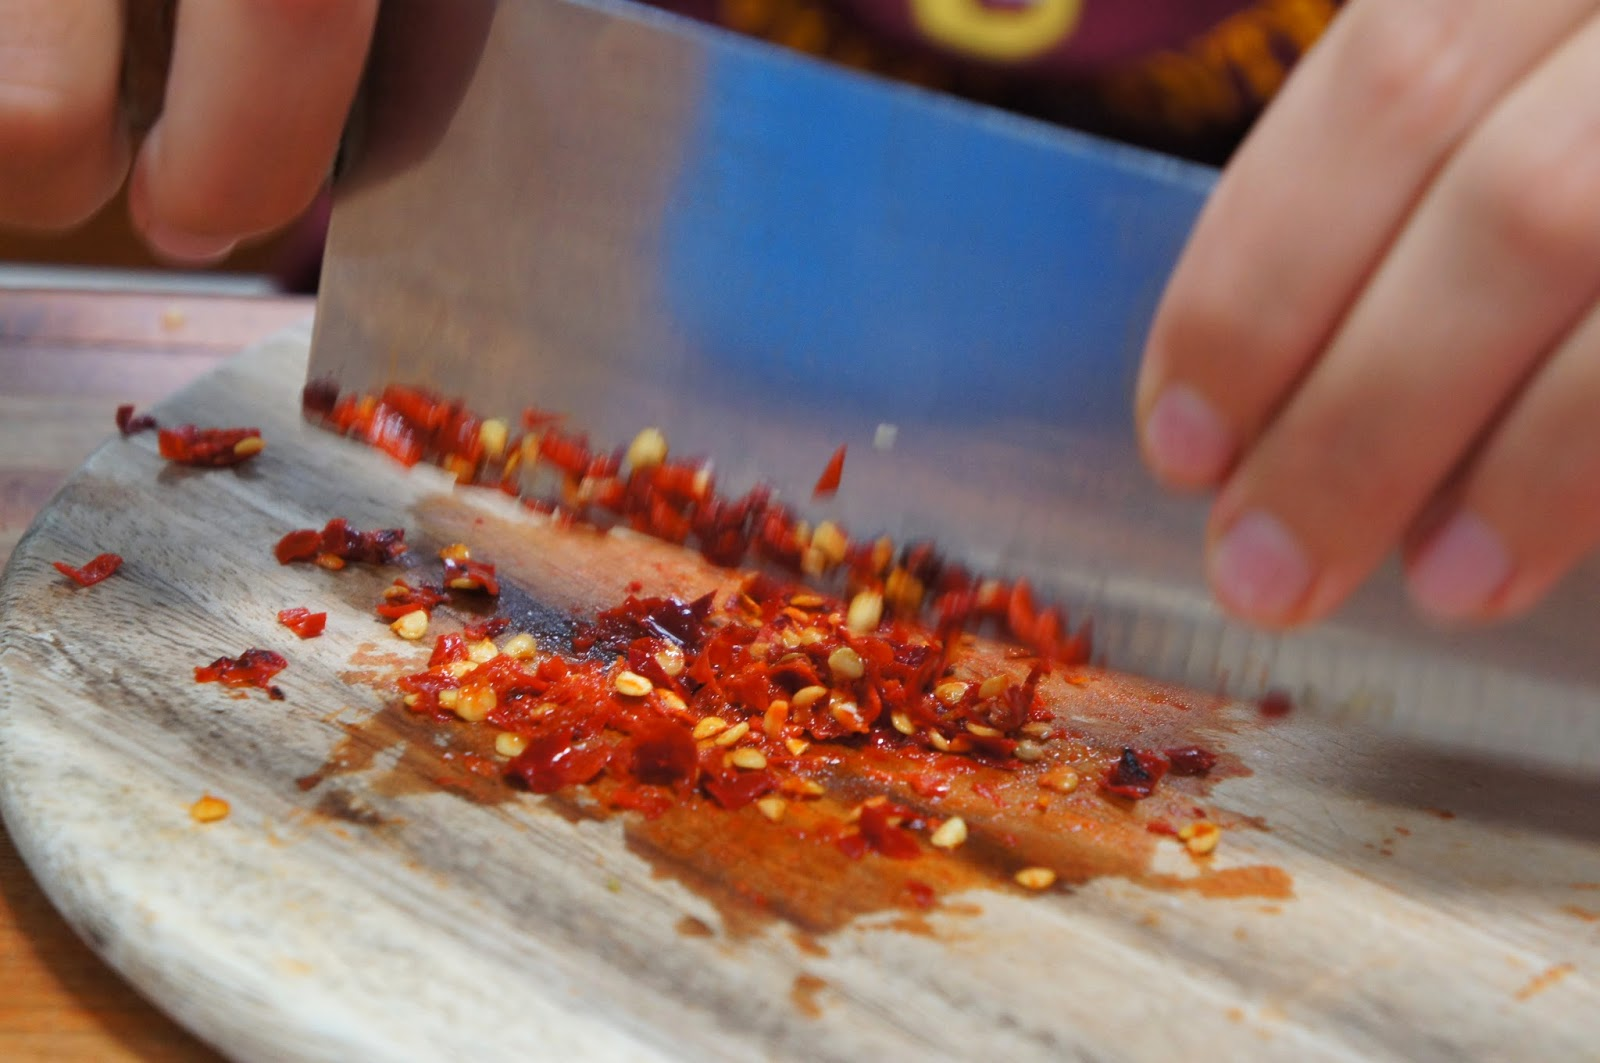 Chiang Mai - Mincing peppers to make red curry paste